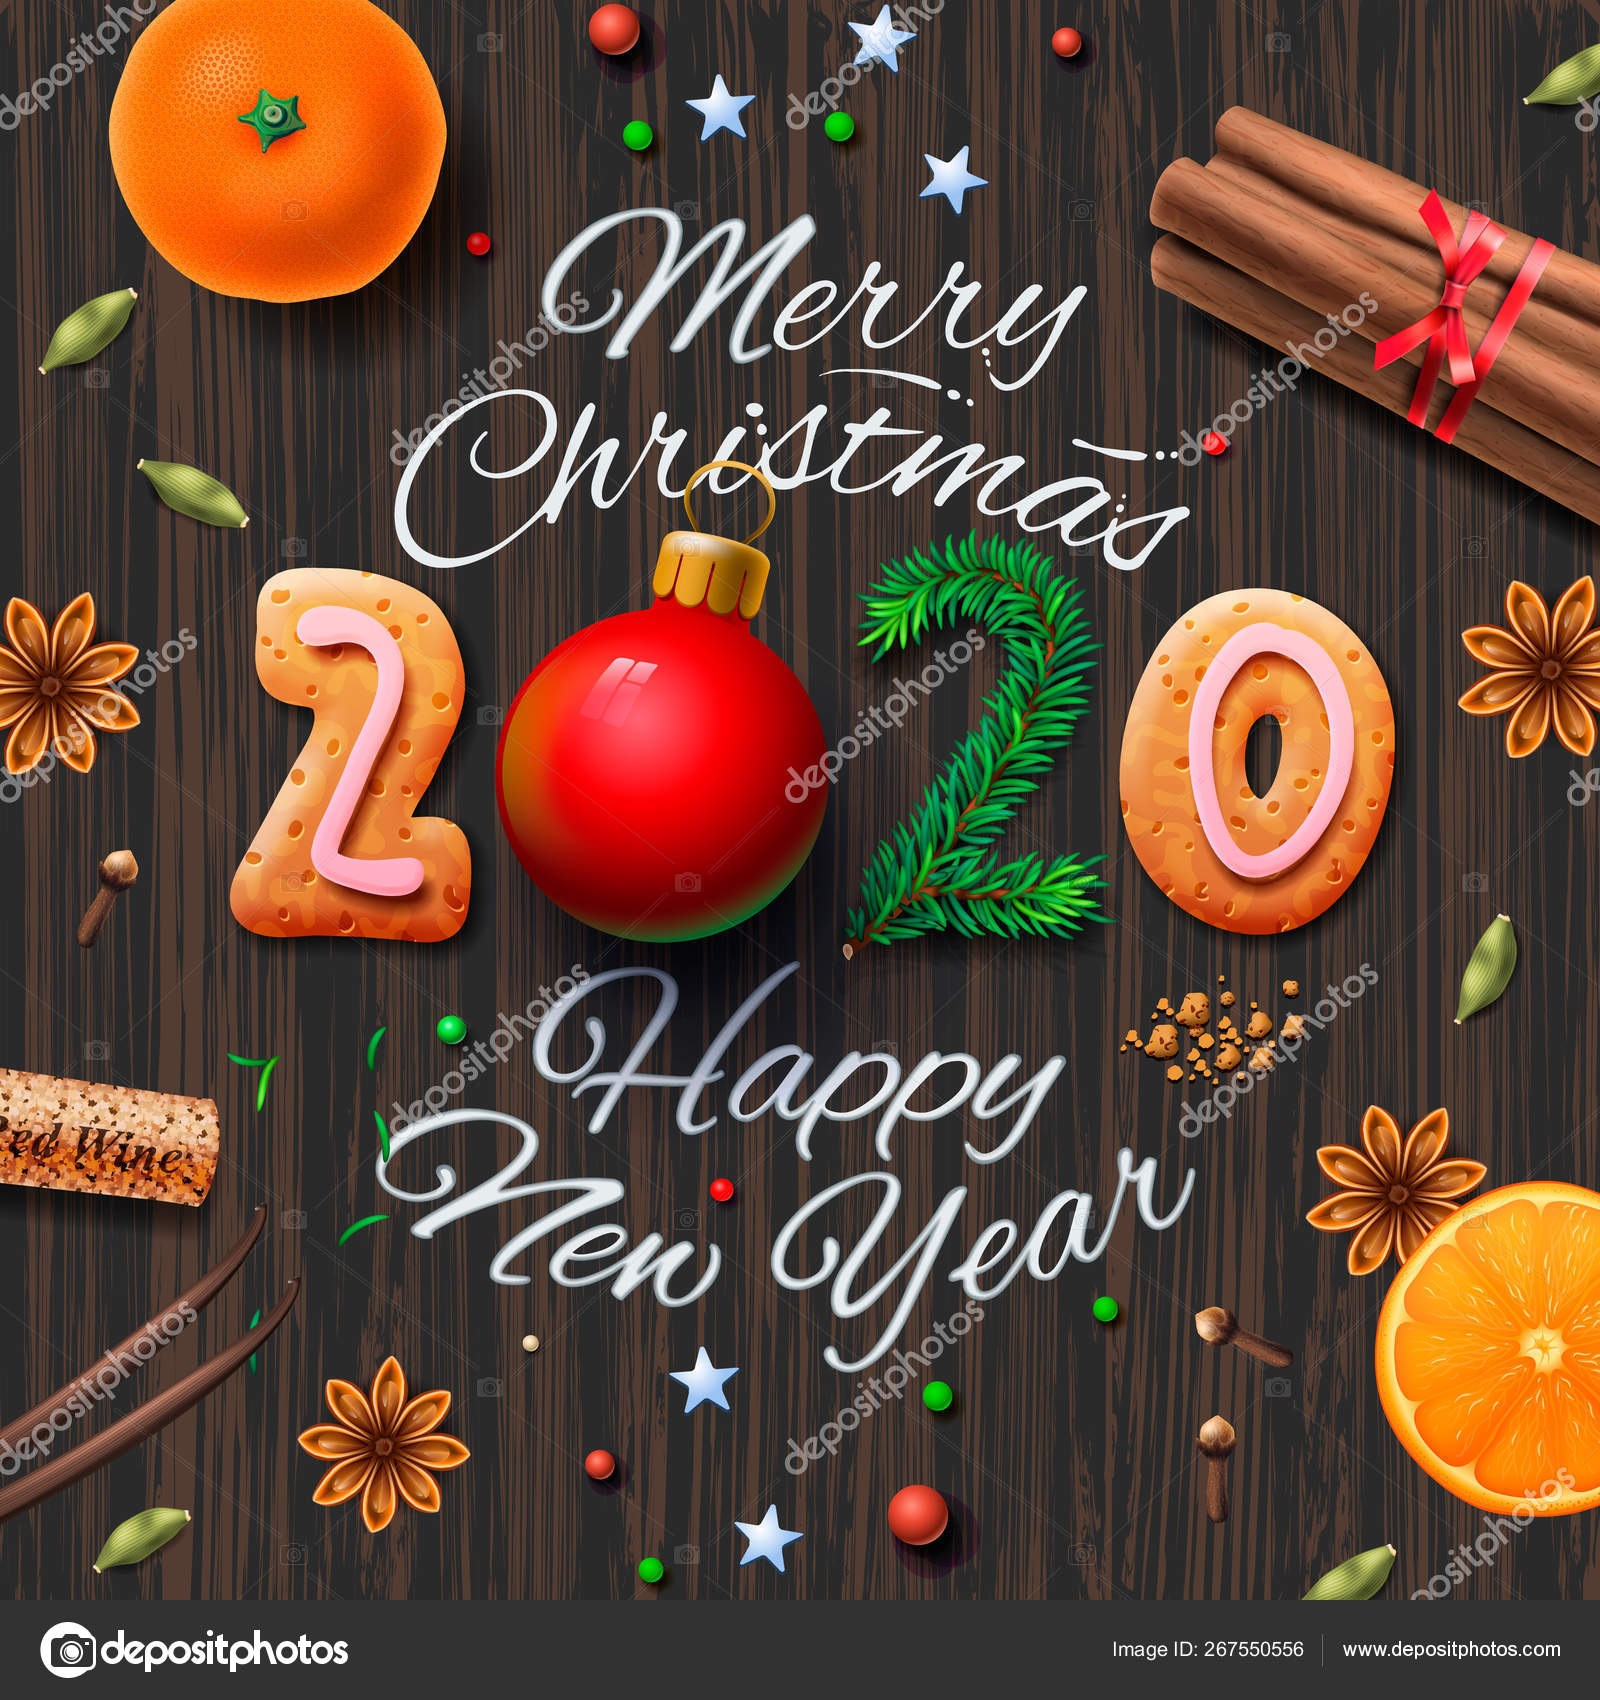 merry christmas happy new year 2020 vintage background with typography and spices for christmas drink mulled wine vector illustration stock vector c ikopylove 267550556 merry christmas happy new year 2020 vintage background with typography and spices for christmas drink mulled wine vector illustration stock vector c ikopylove 267550556